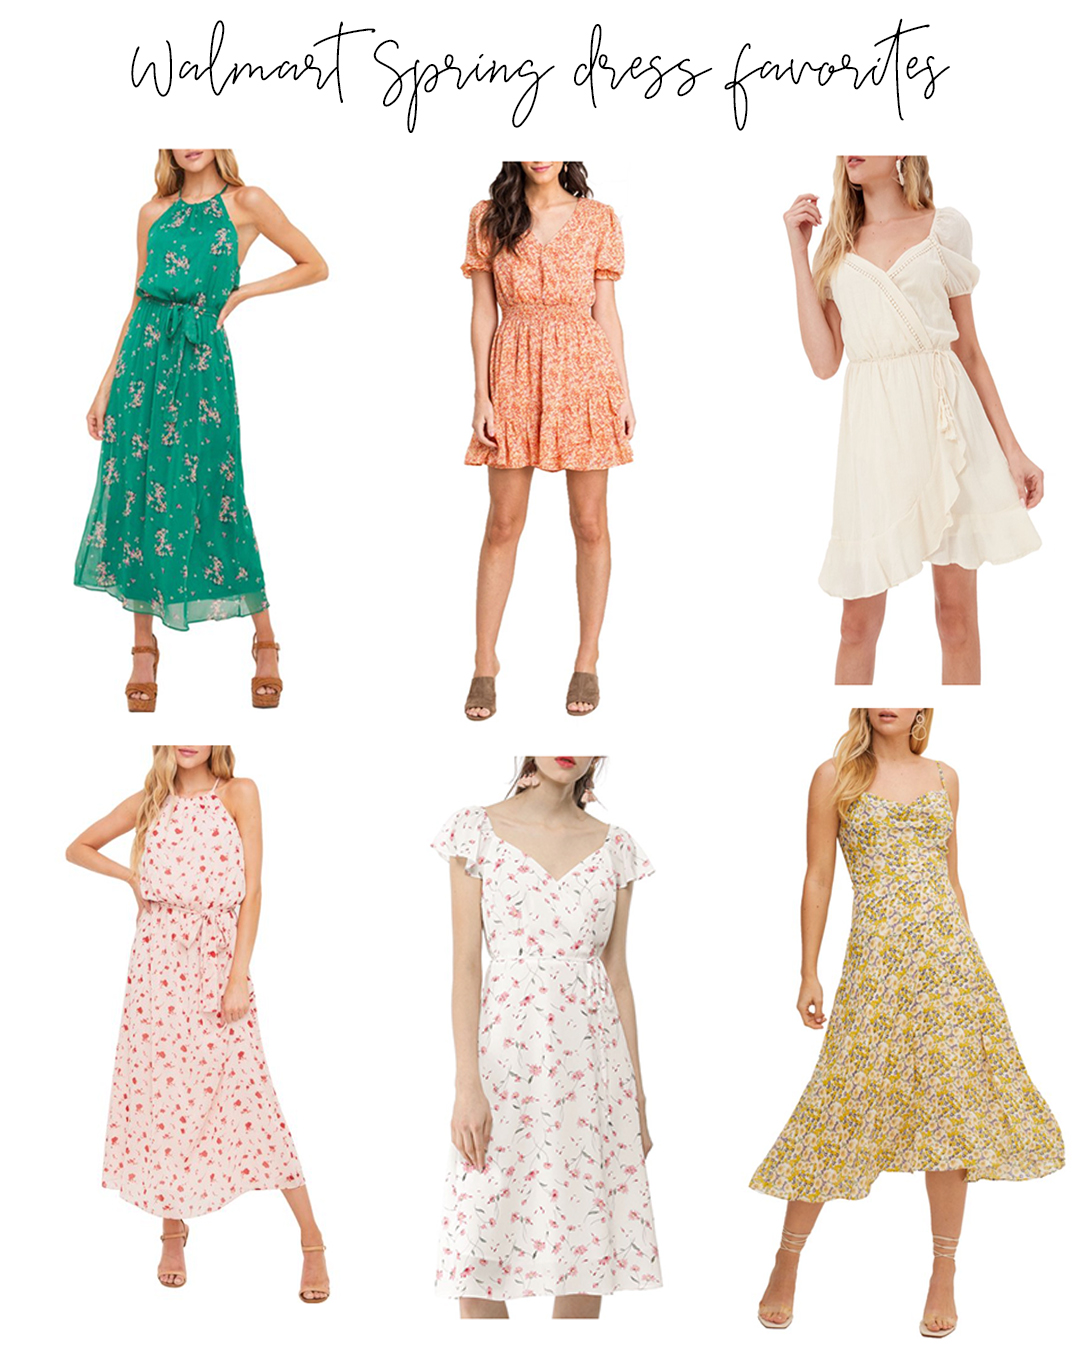 Affordable spring dresses under $50 - roundup of some of my favorite new styles for less. Spring and Summer dress looks + Walmart+ review.